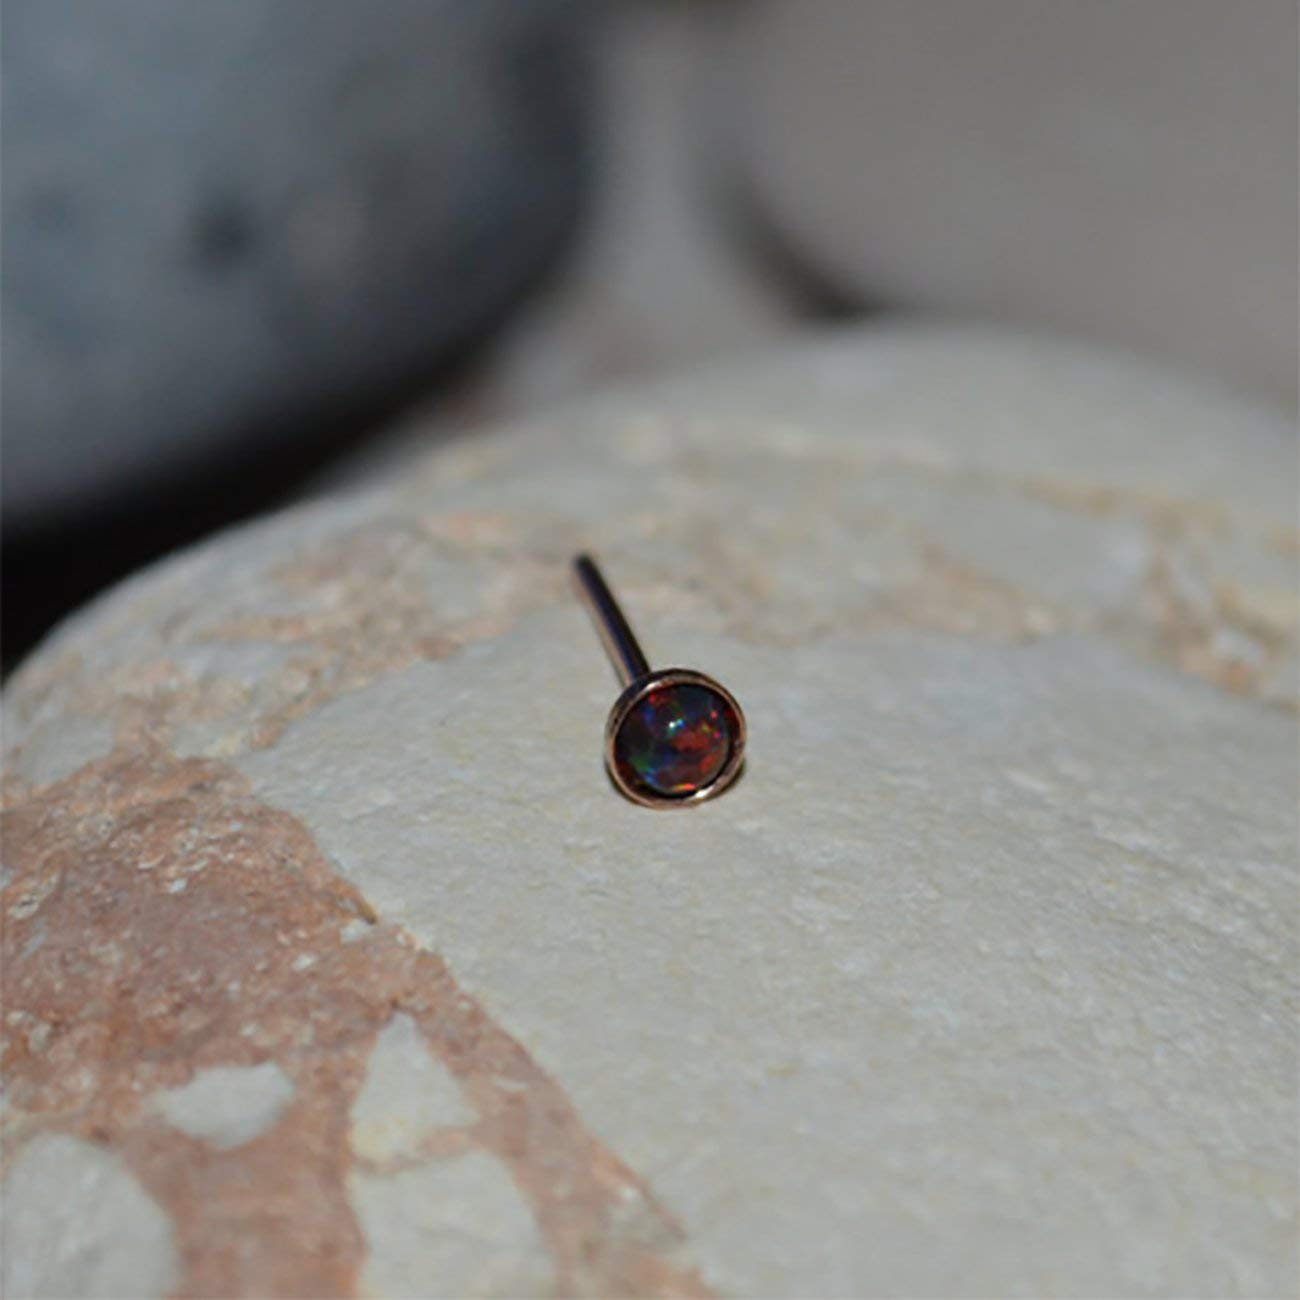 855dfe7e6 Get Quotations · 3mm Black-Red Opal TRAGUS STUD // Gold Nose Stud - Tragus Earring  Stud